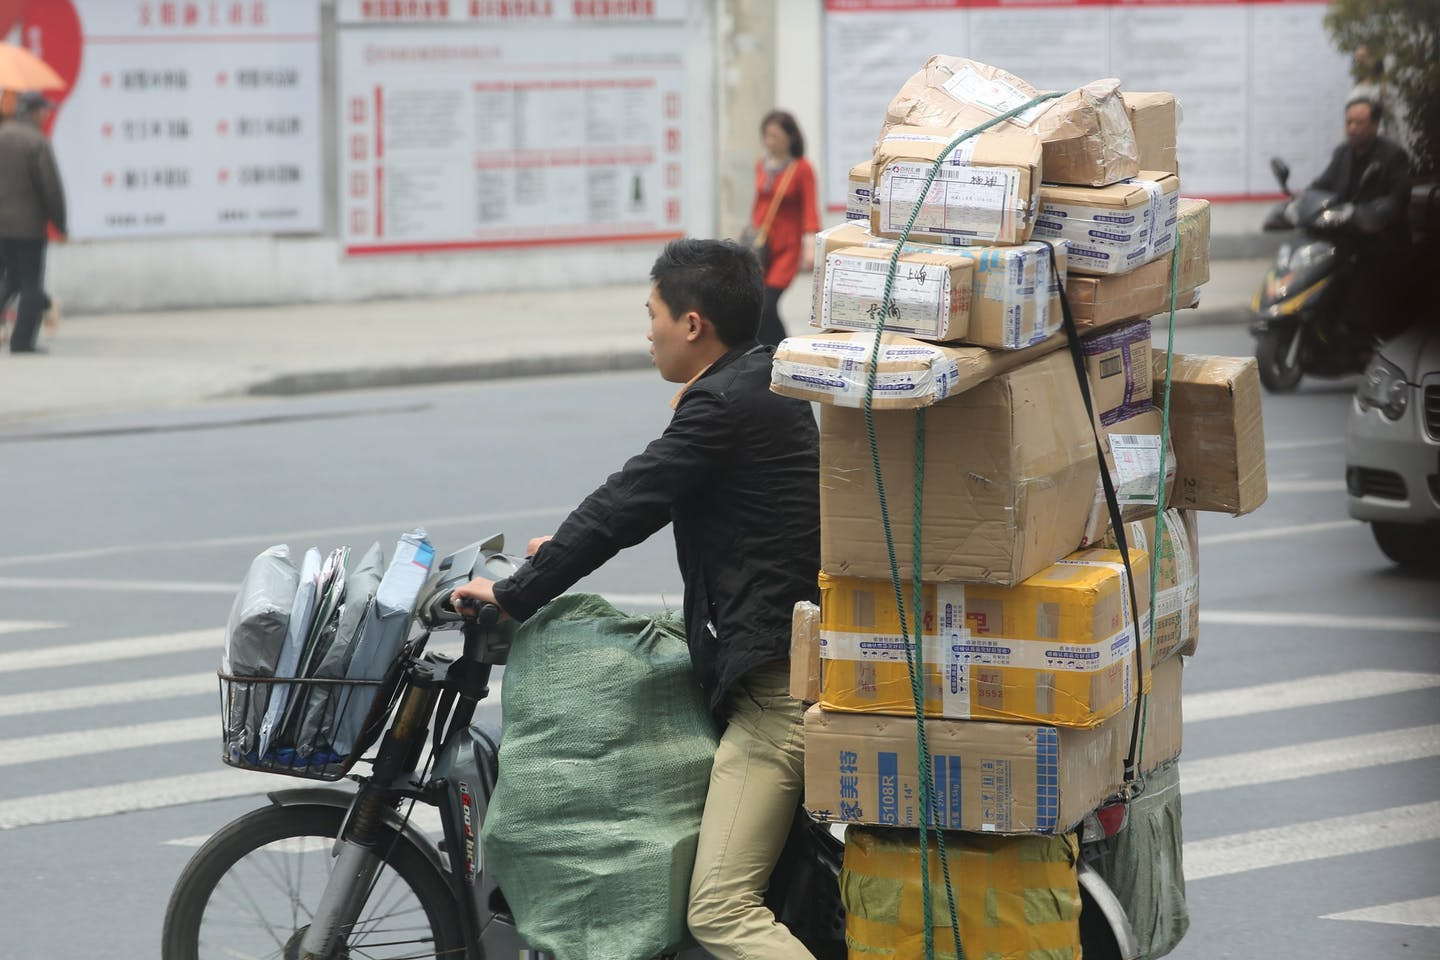 Packages for delivery in China